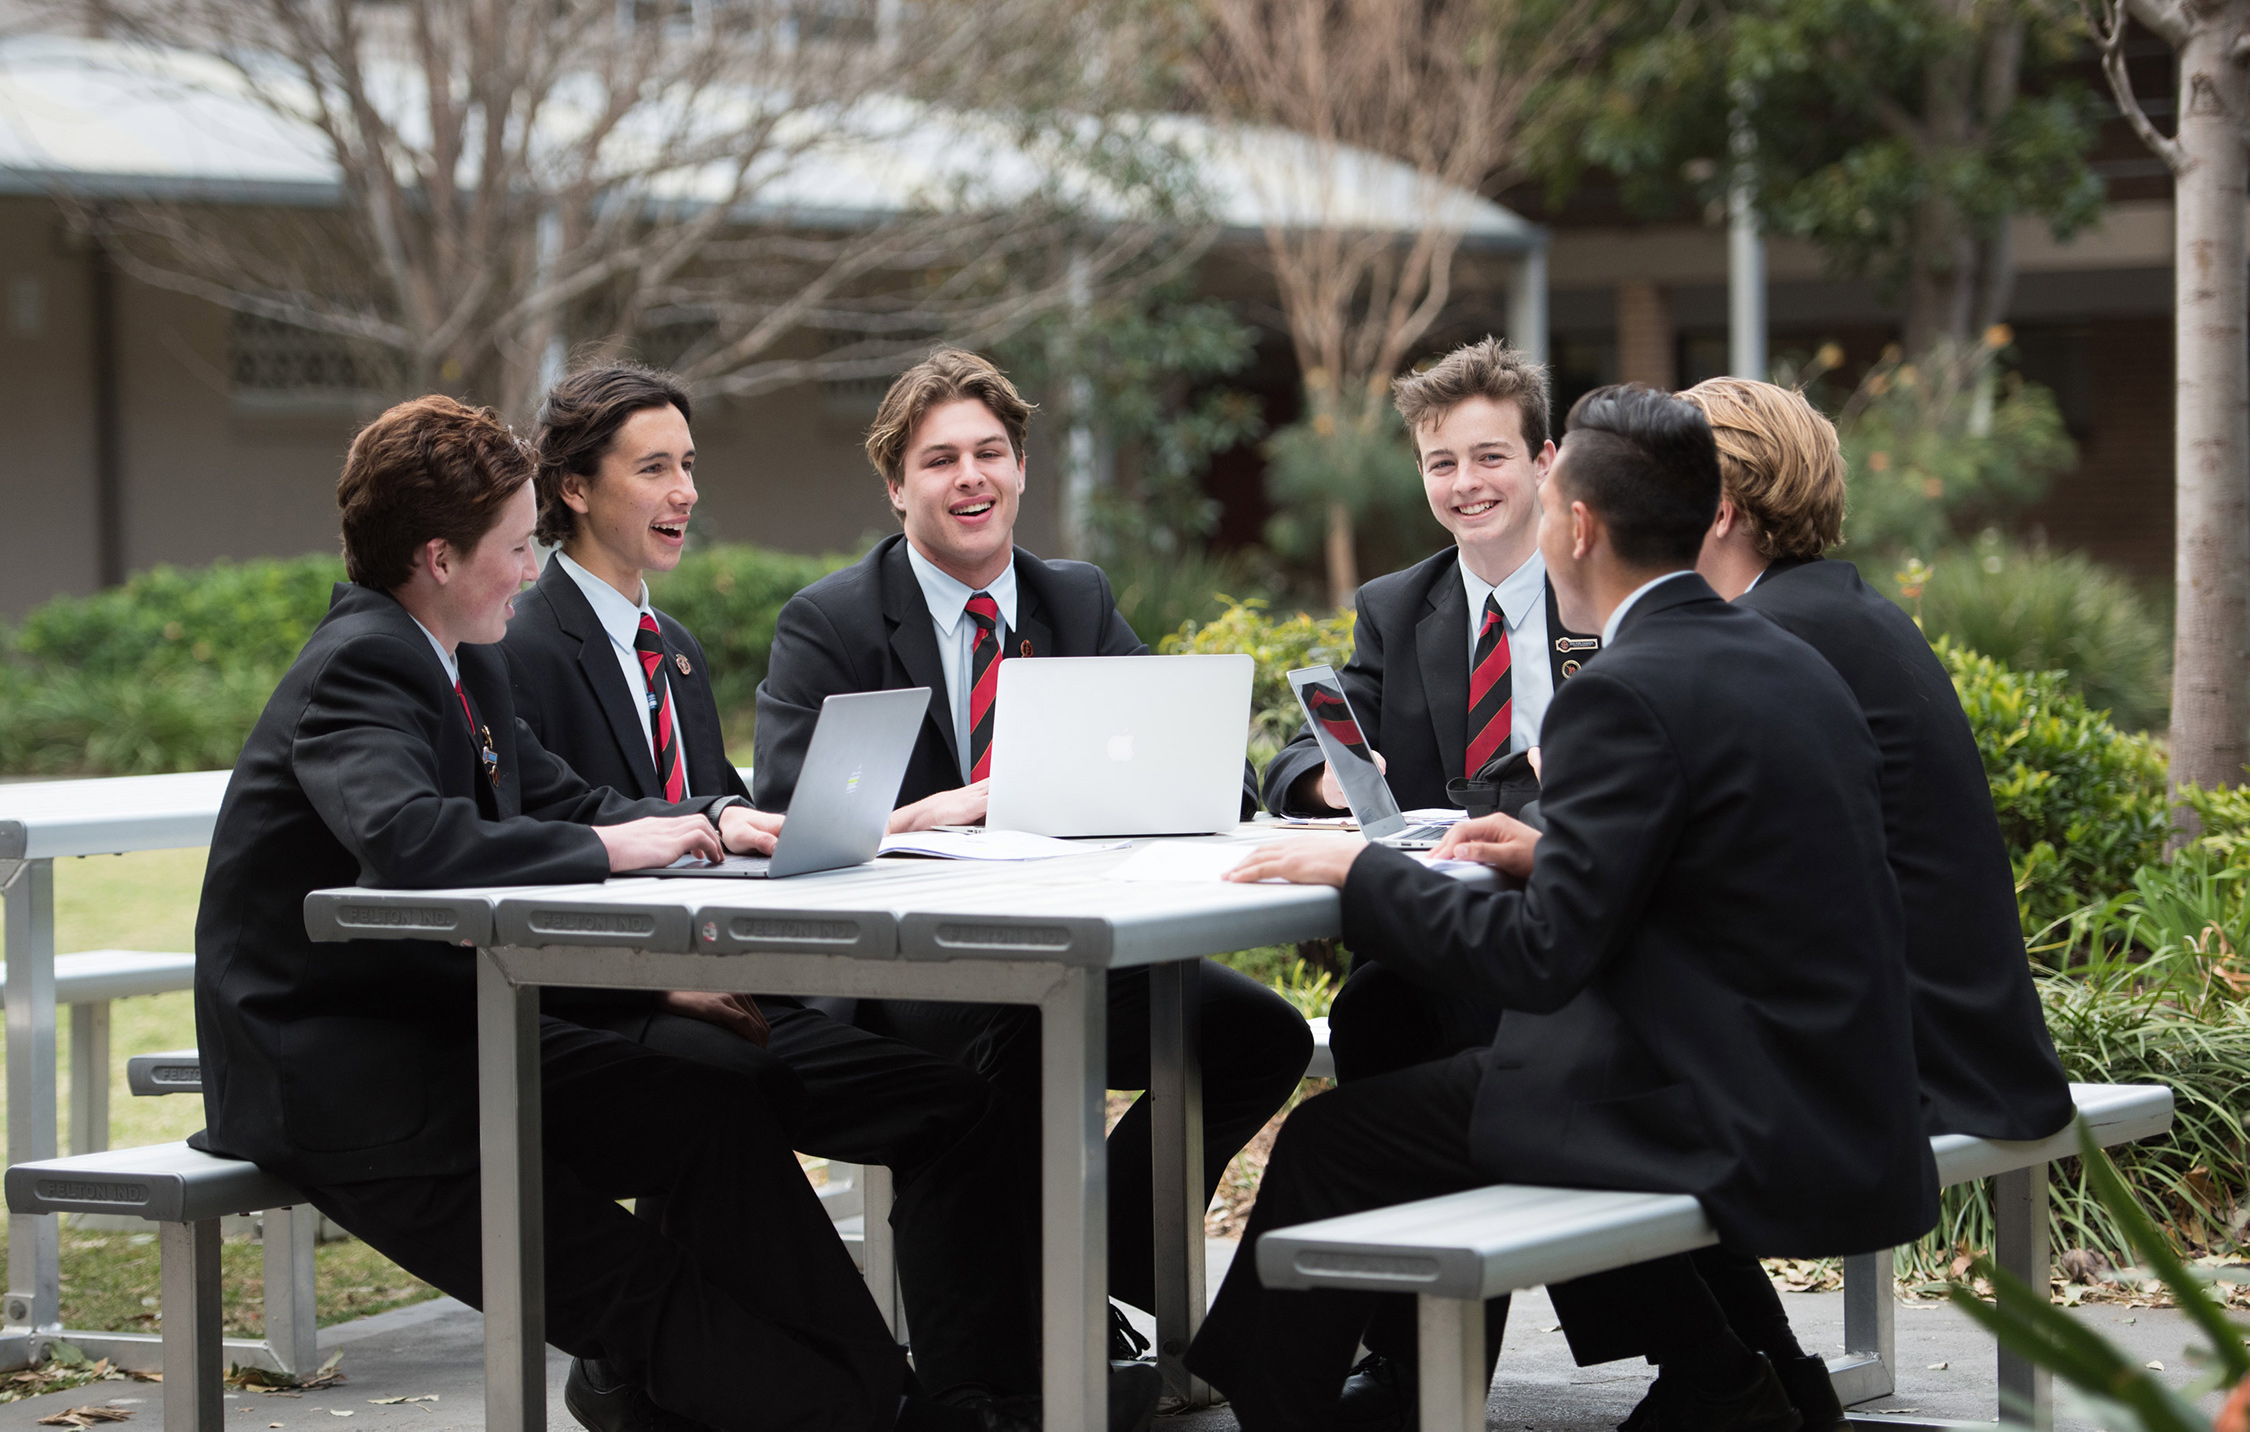 A group of students laugh together as they work on their laptops at an outdoor table